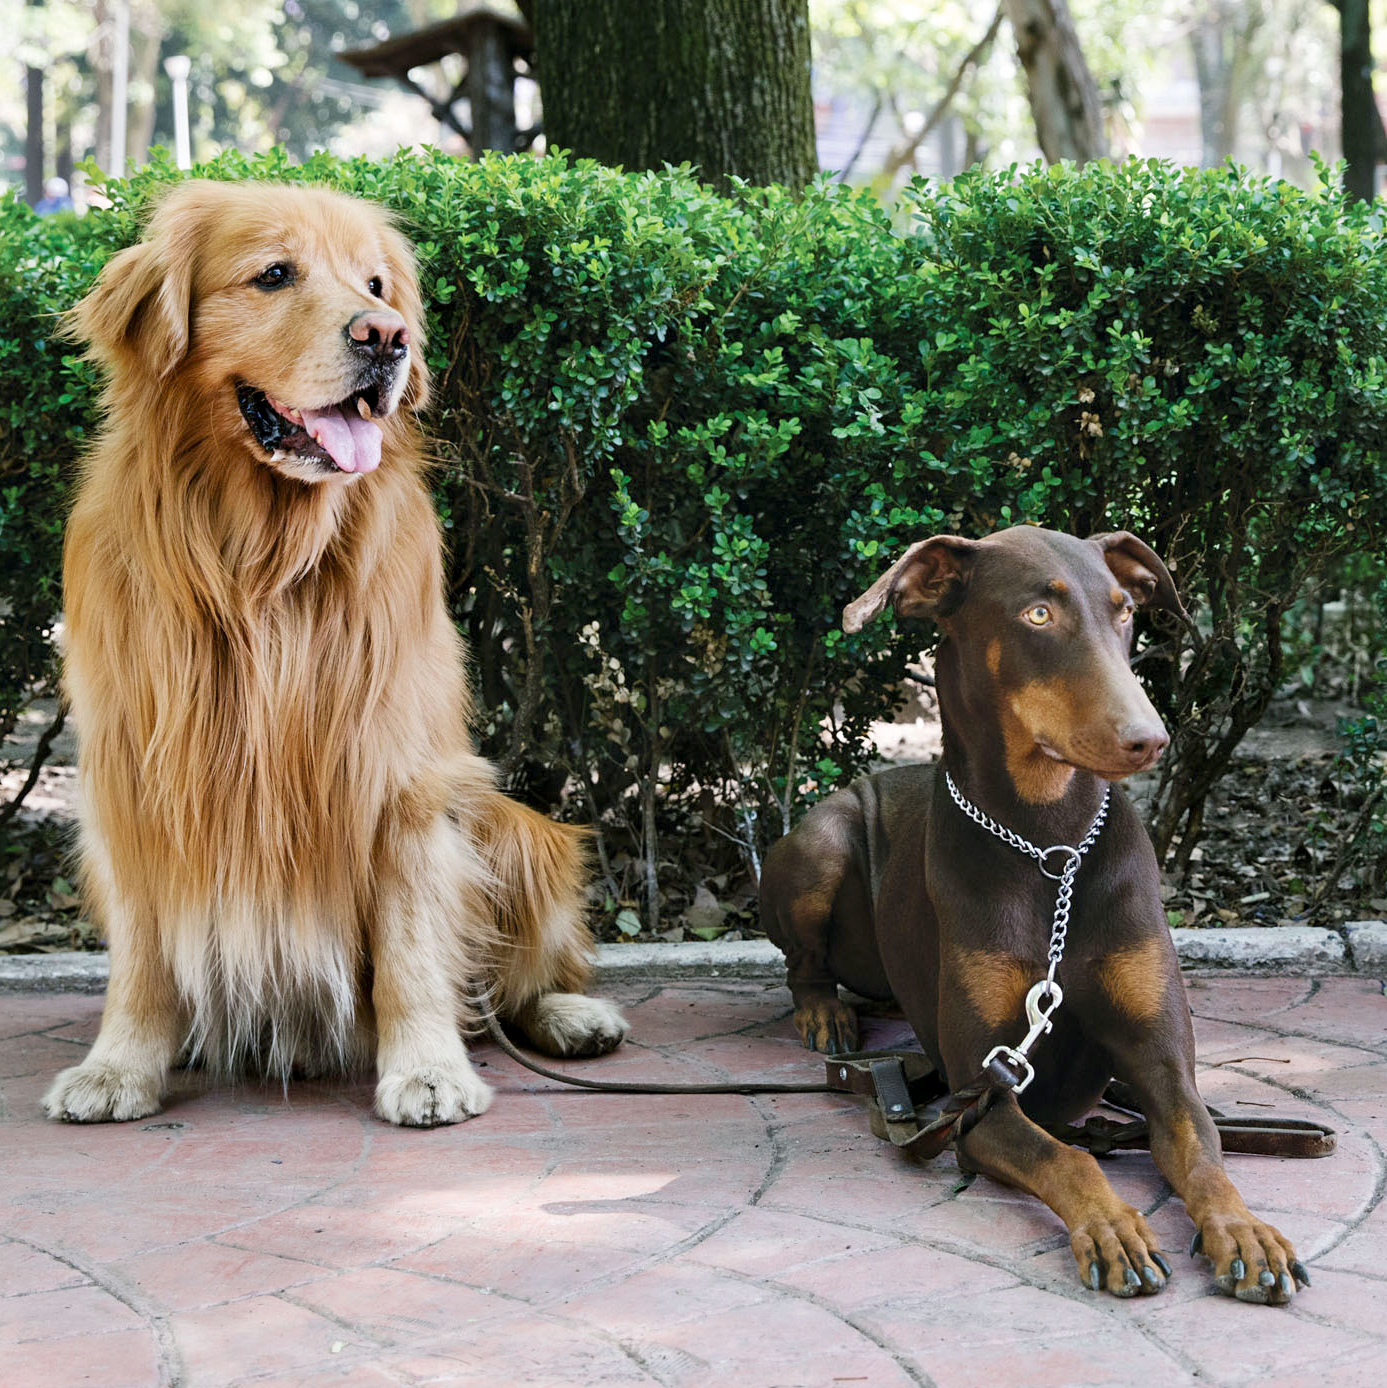 large dogs with leashes on pathway